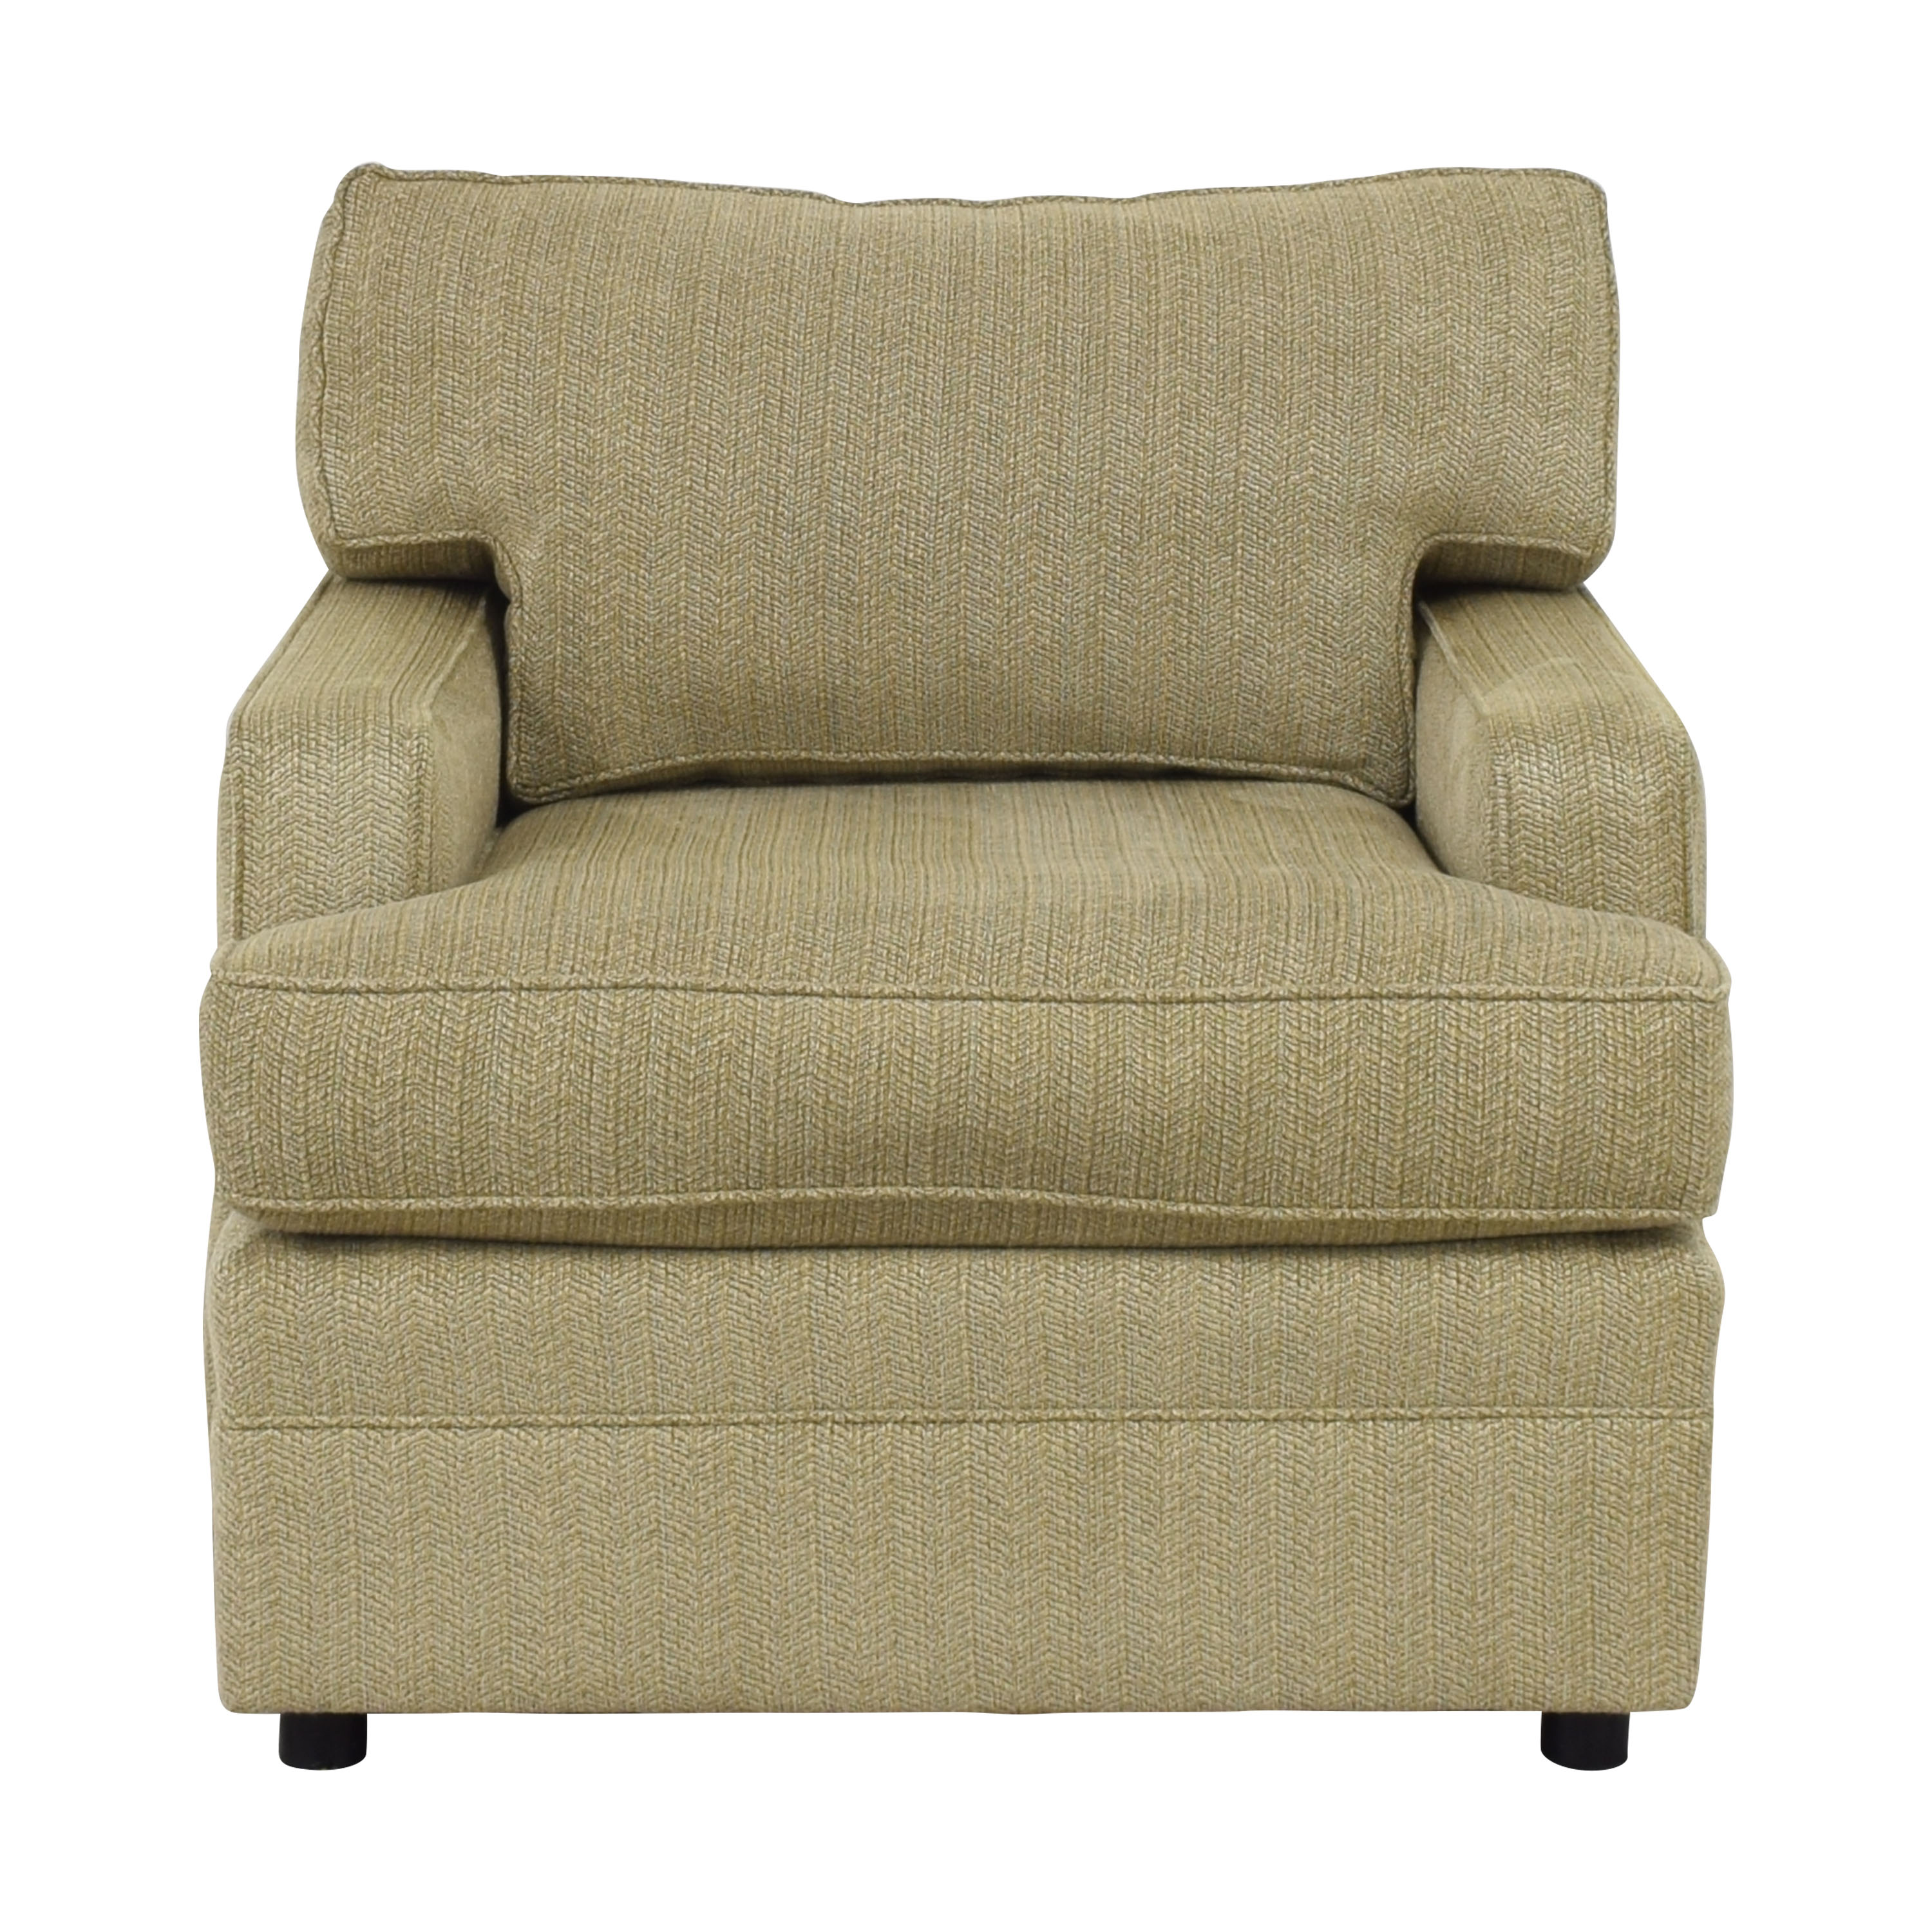 shop Thomasville Accent Chair Thomasville